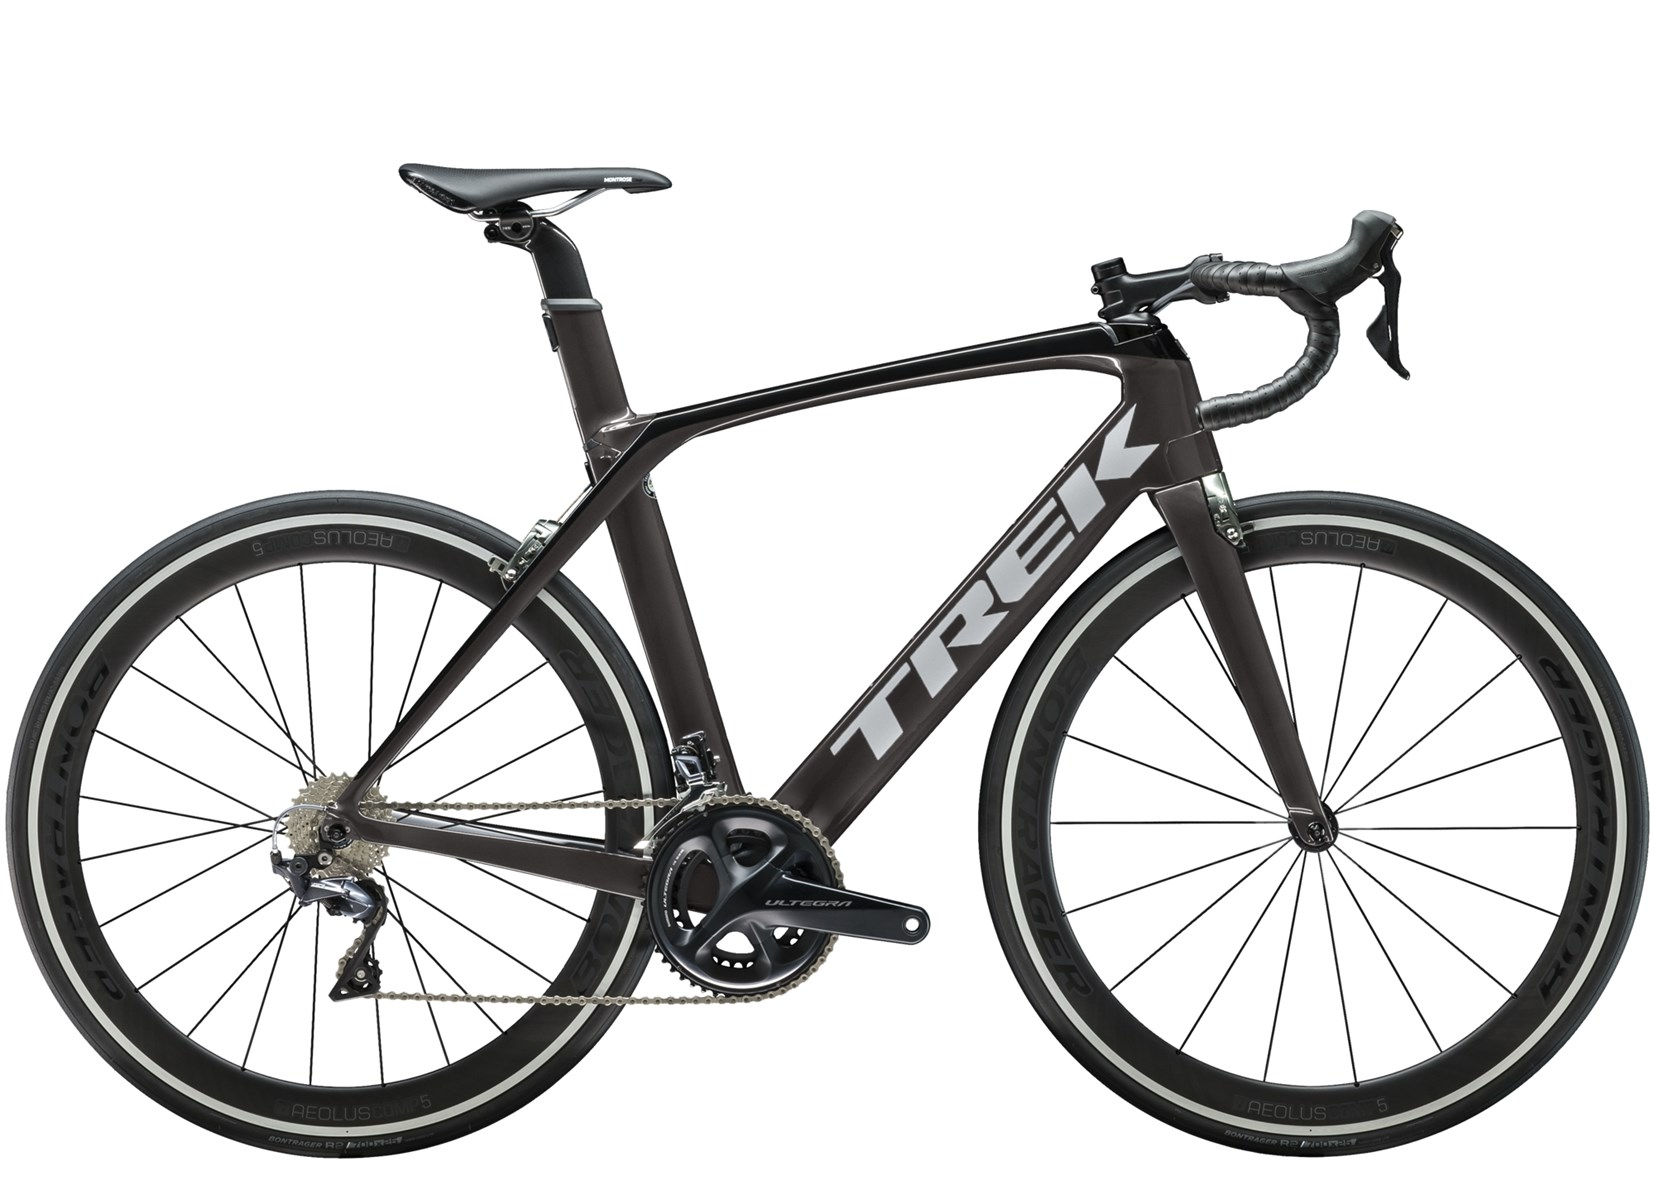 2019 Trek Madone SL 6 Carbon Mens Road Bike in Black £3,600.00